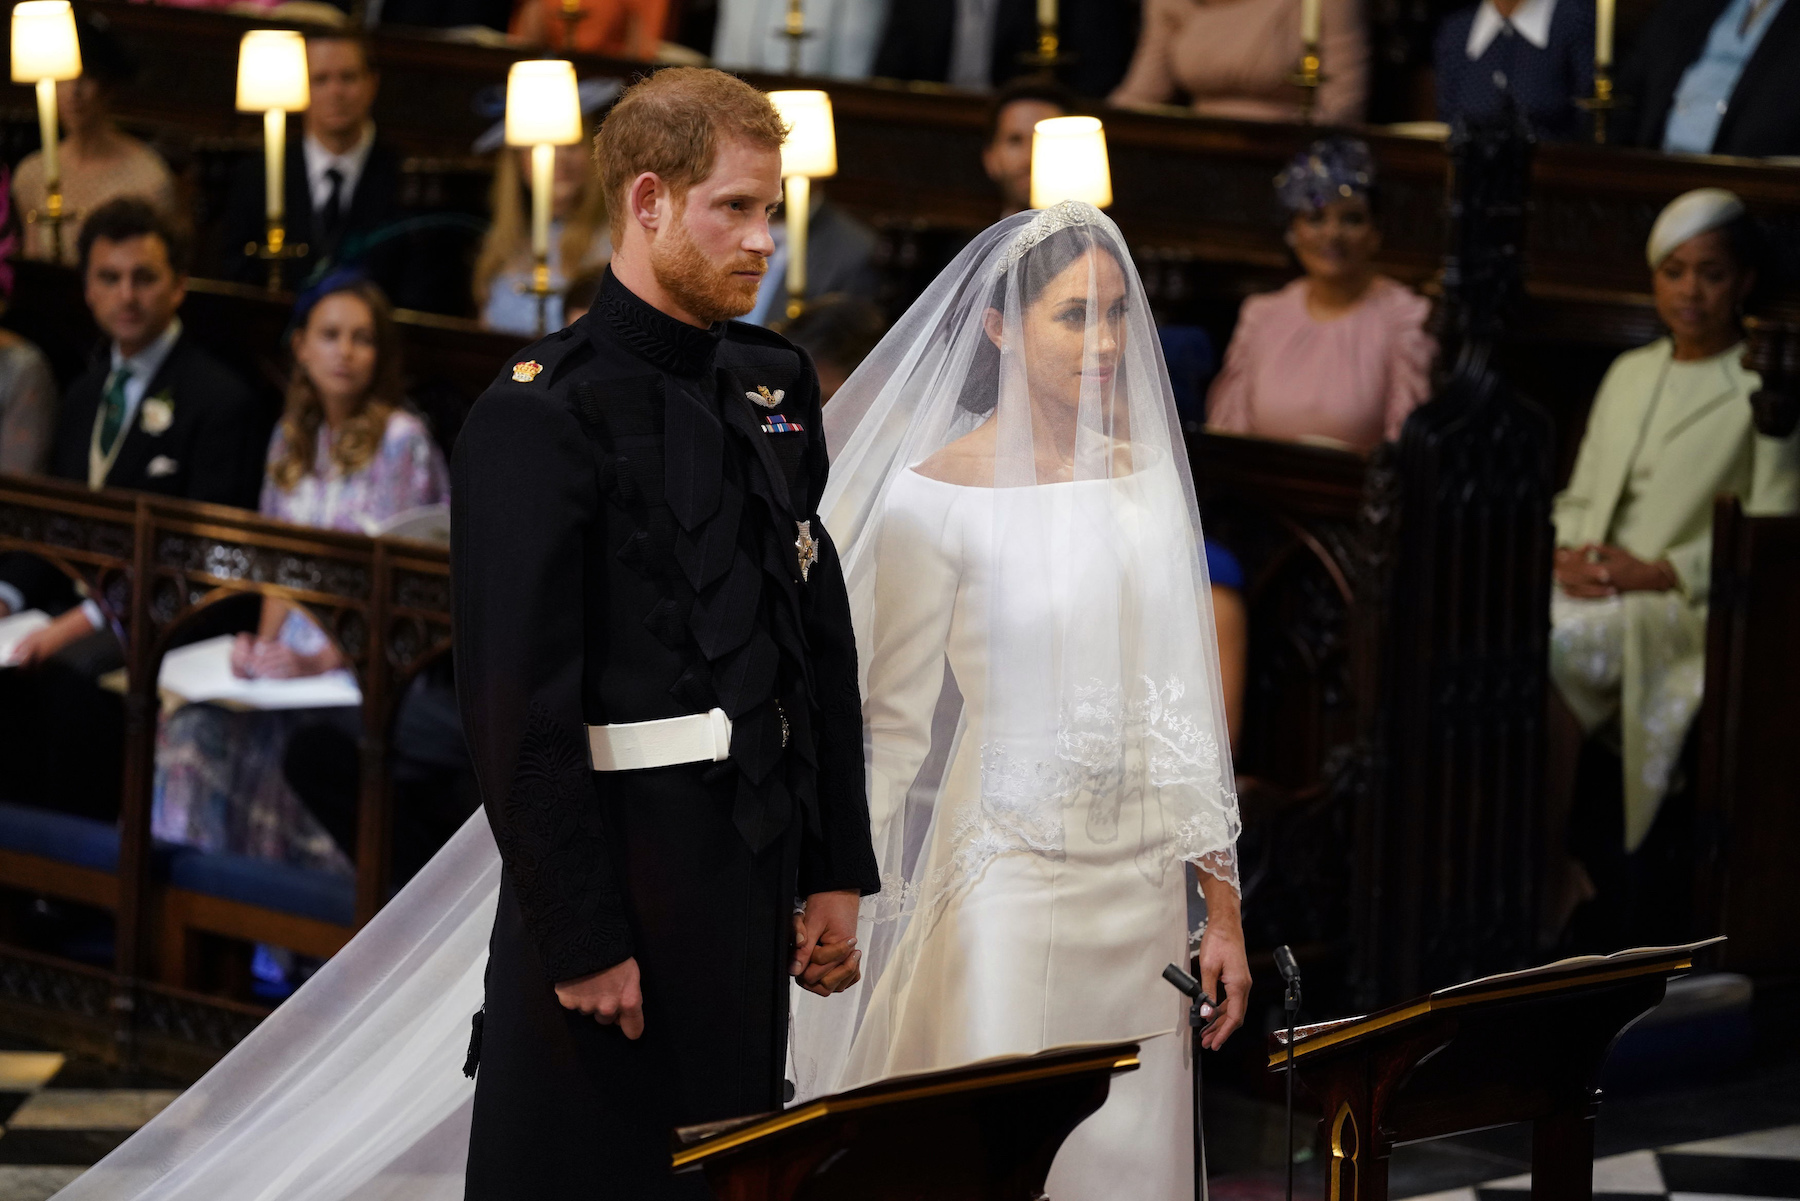 "<div class=""meta image-caption""><div class=""origin-logo origin-image kgo""><span>kgo</span></div><span class=""caption-text"">Prince Harry and Meghan Markle in St George's Chapel at Windsor Castle for their wedding. (Dominic Lipinsky/PA Wire)</span></div>"